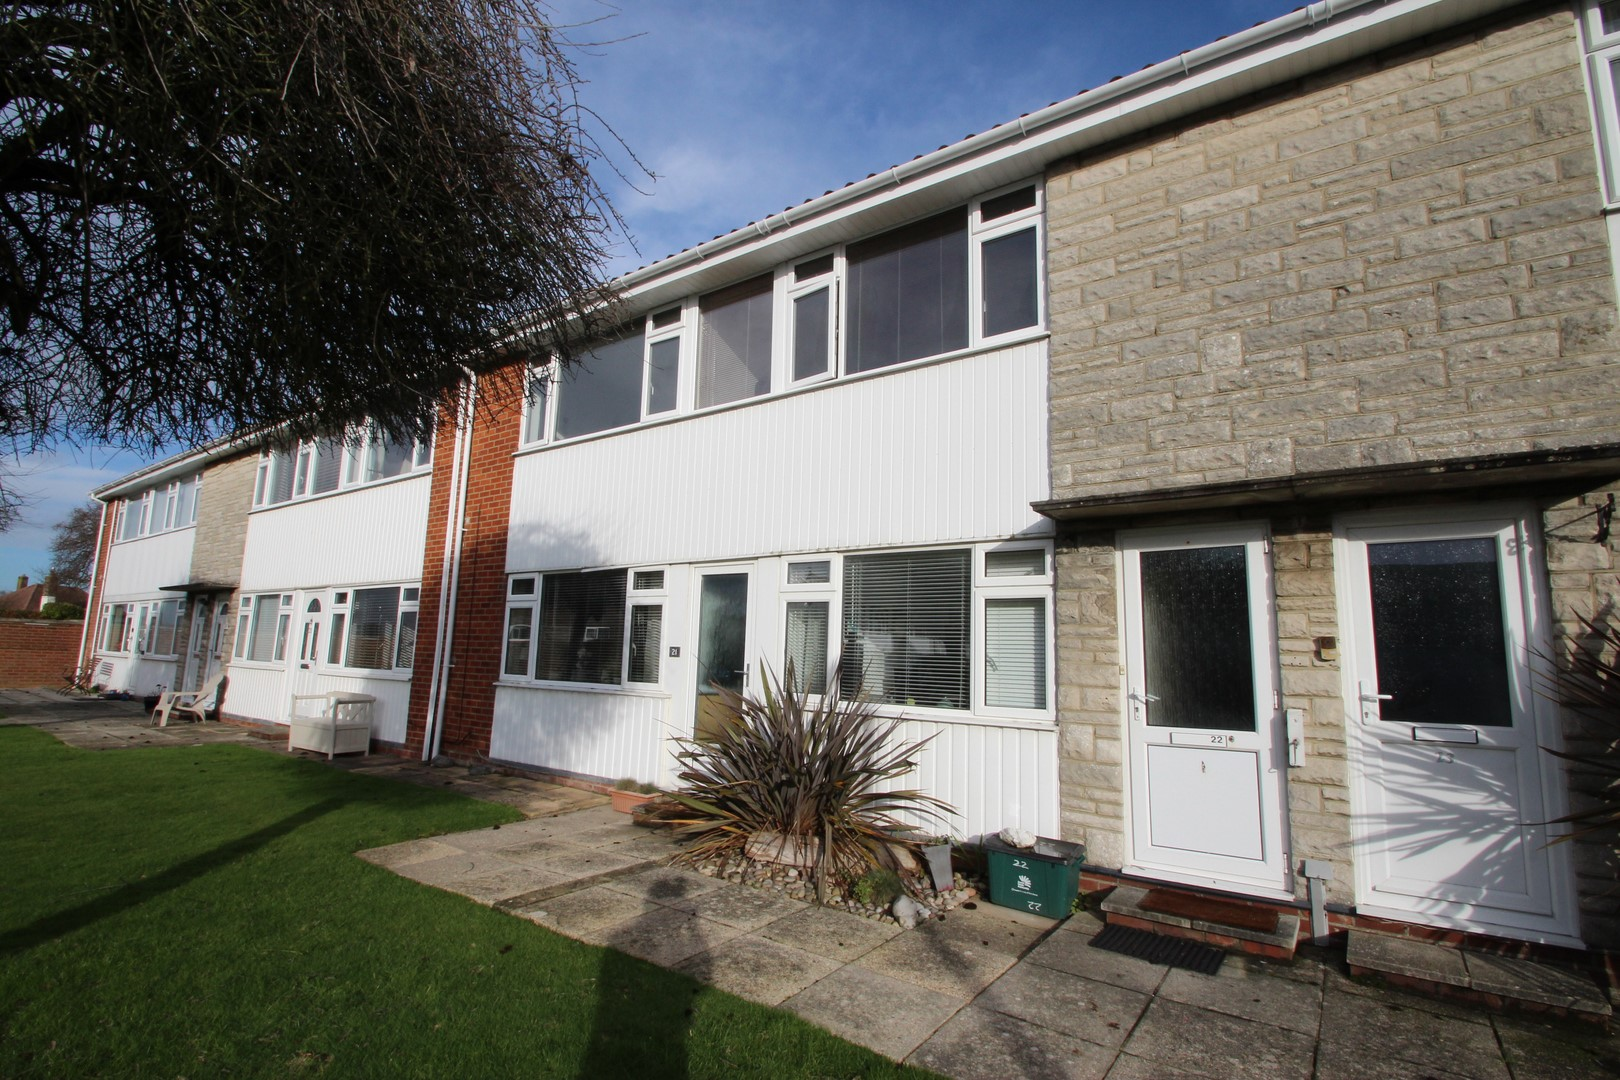 2 Bedroom Flat in Friars Cliff